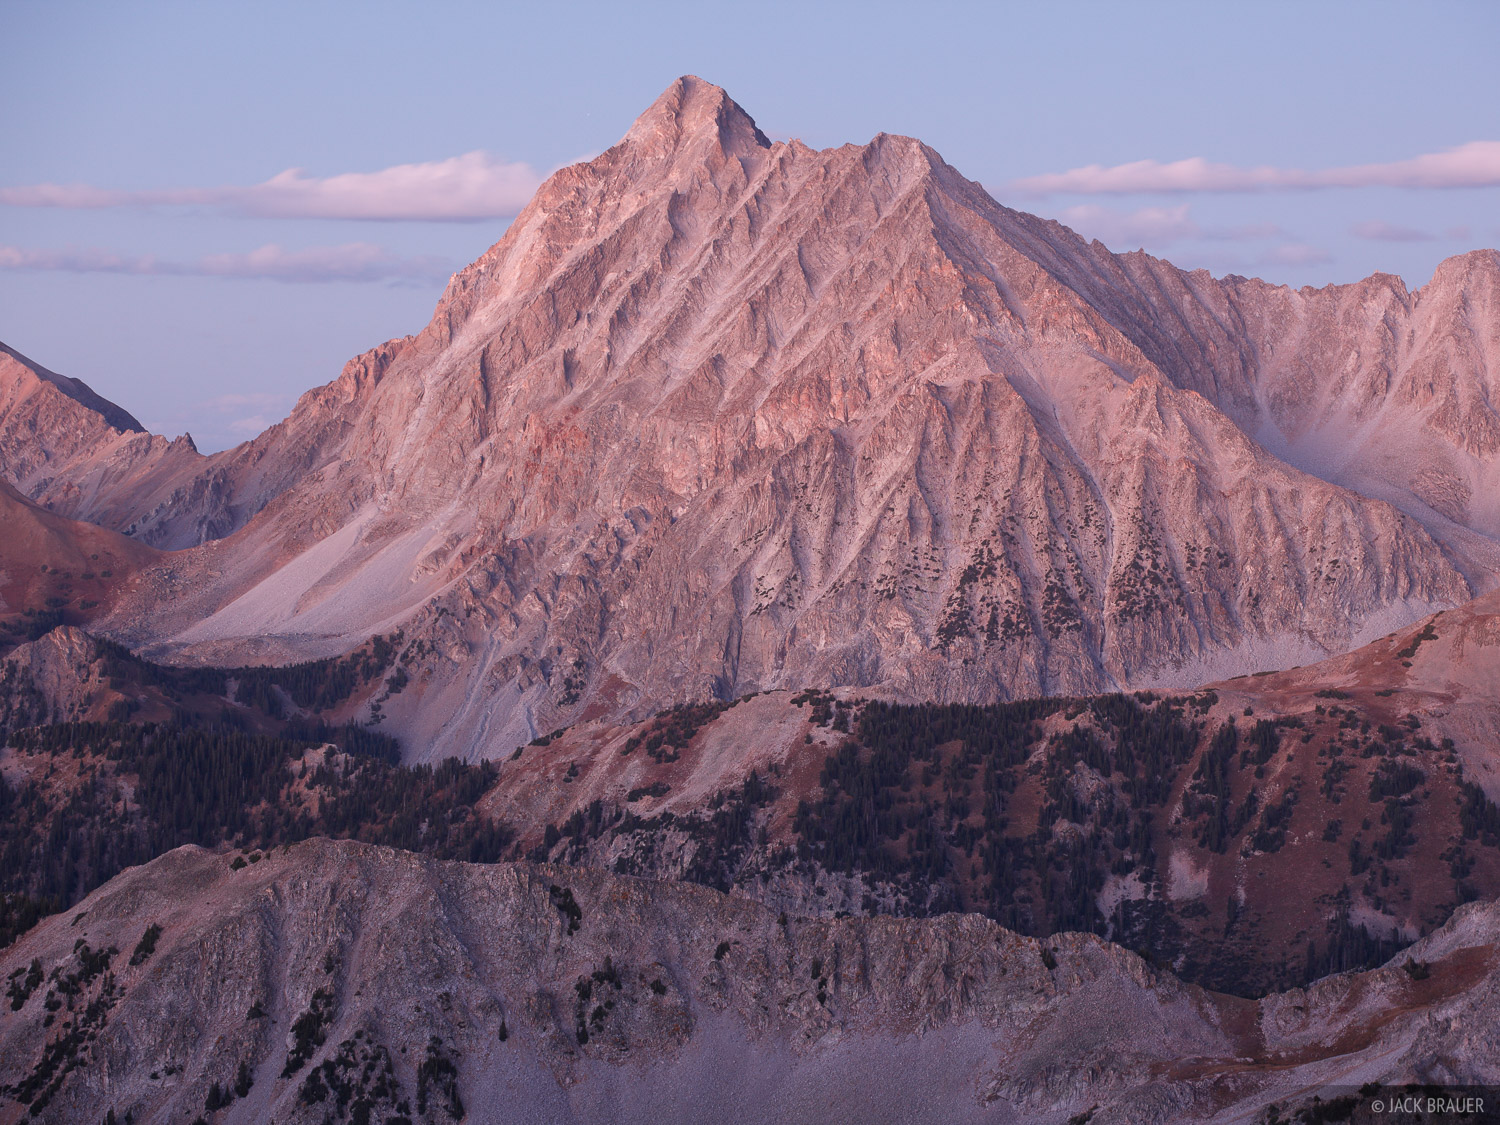 Capitol Peak, Colorado, Elk Mountains, 14er, Avalanche Pass, Maroon Bells-Snowmass Wilderness, photo